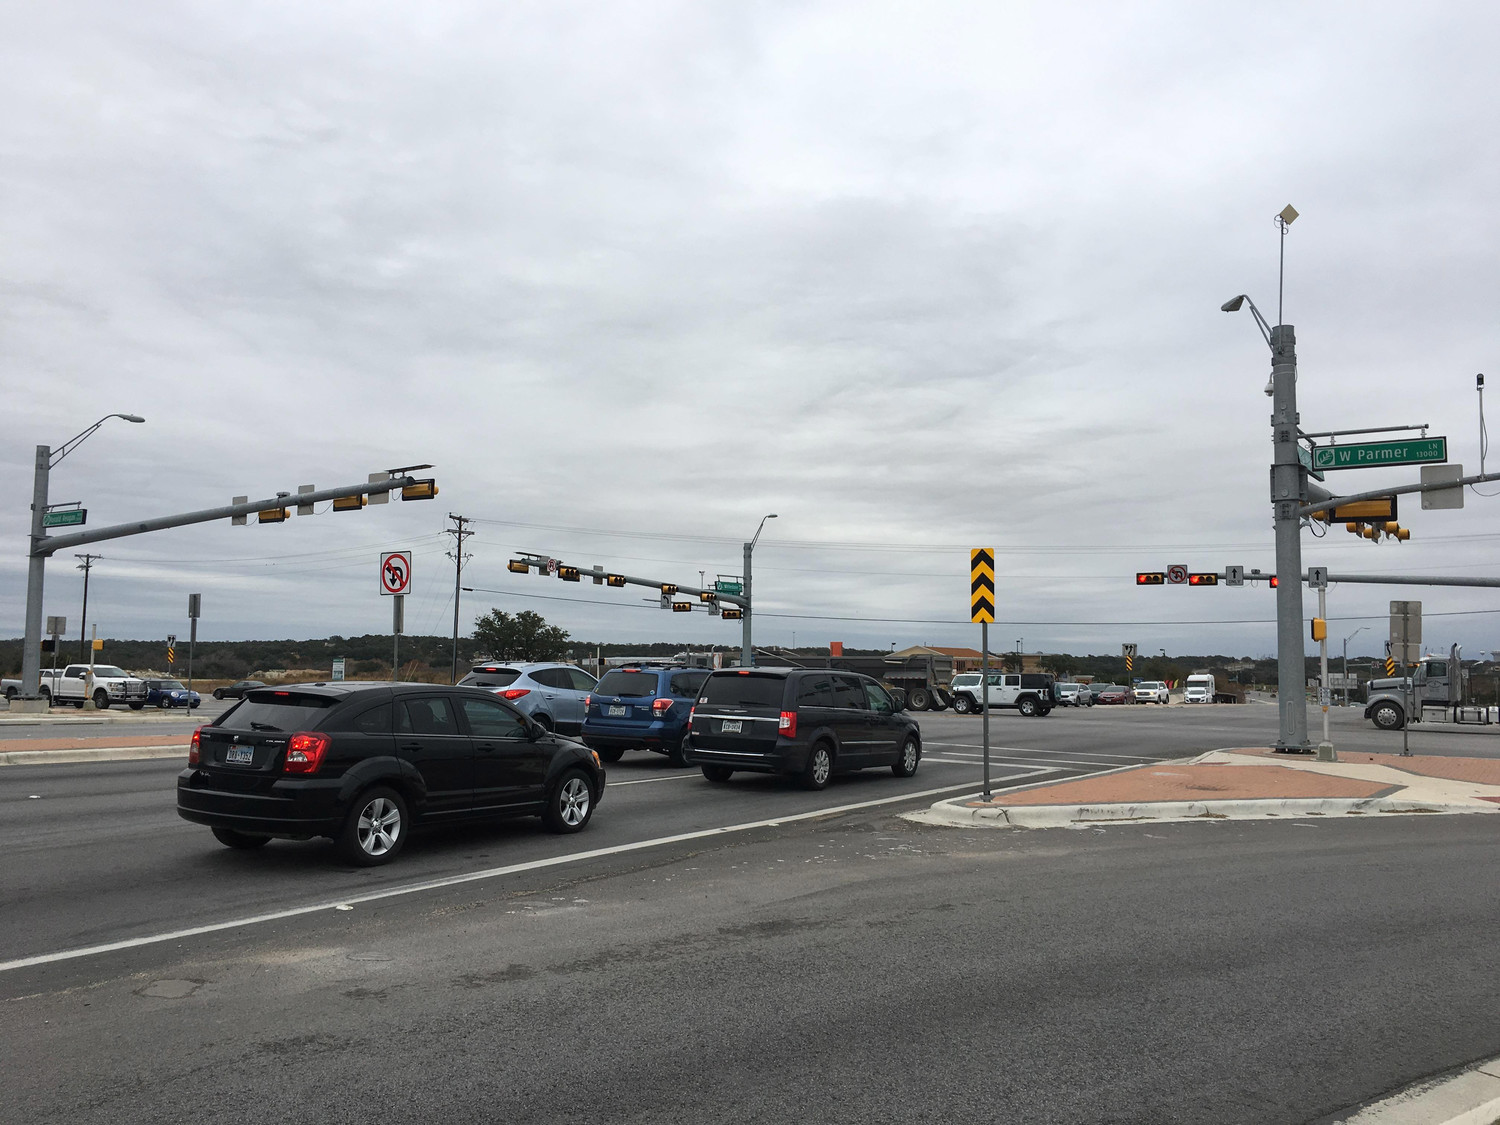 In August, Cedar Park opened the continuous-flow intersection at RM 1431 and Parmer Lane/Ronald Reagan Blvd. The roadway's traffic is expected to double by 2035, according to TxDOT.